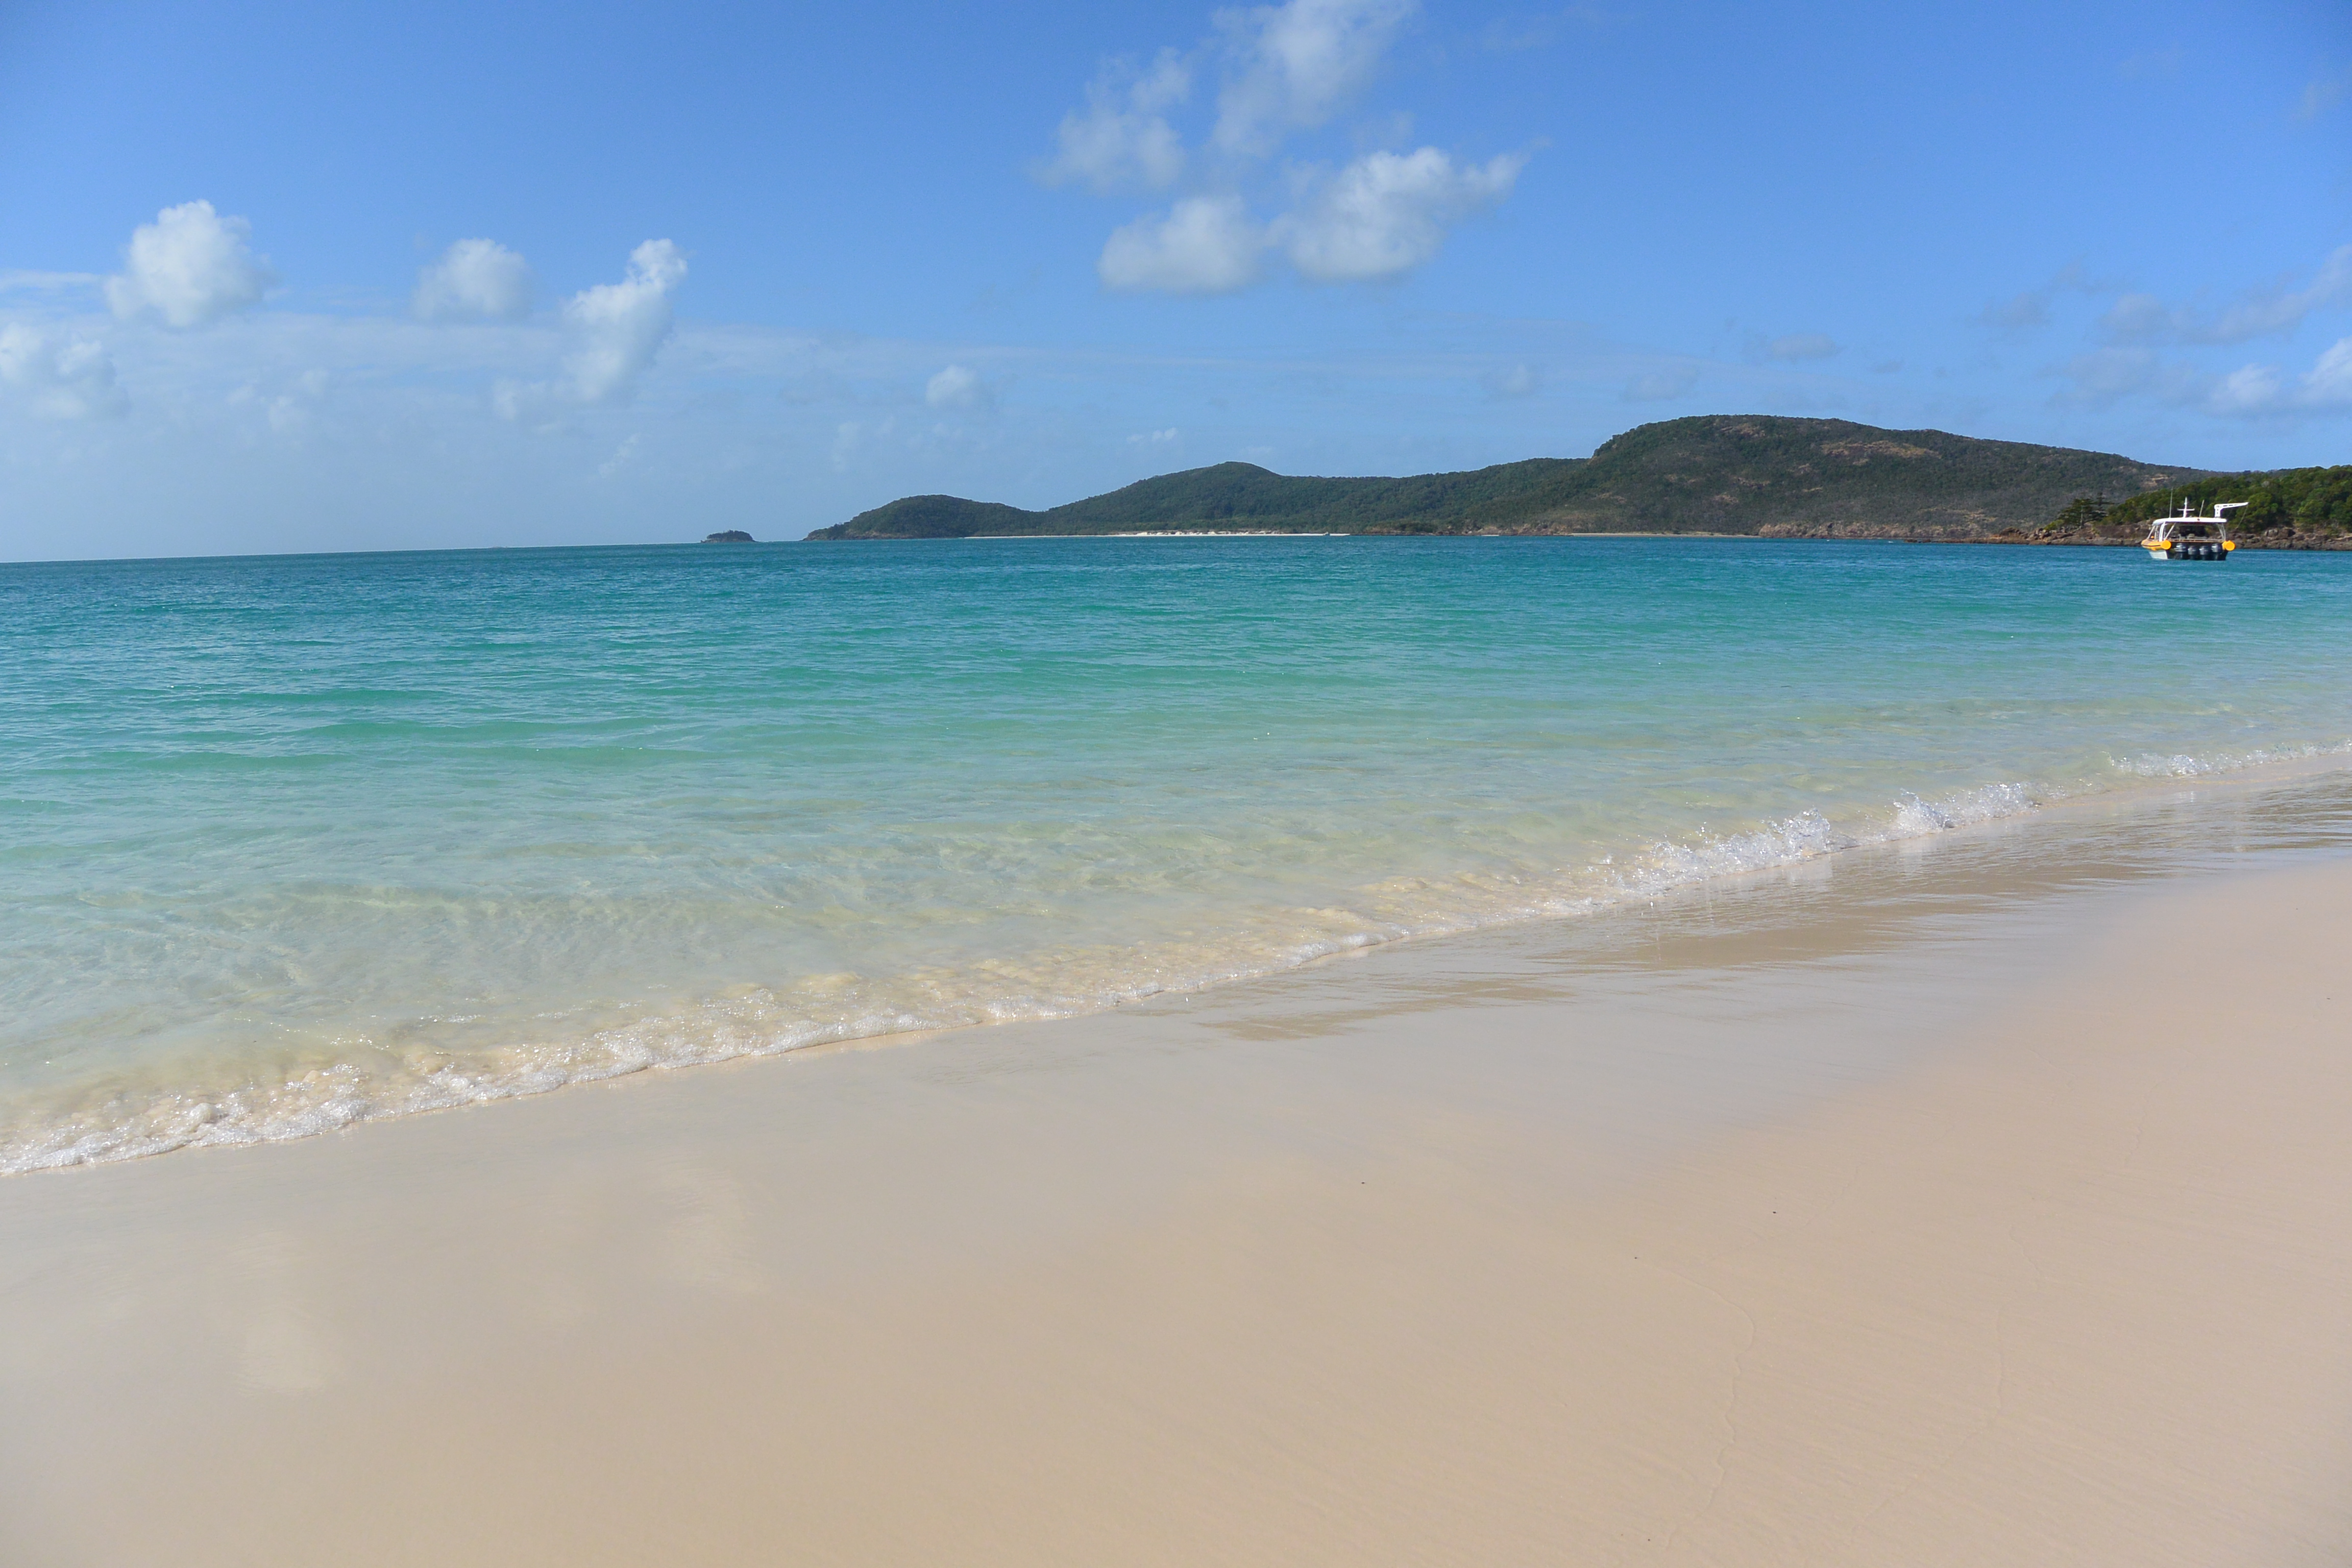 Great day out - Whitehaven Beach